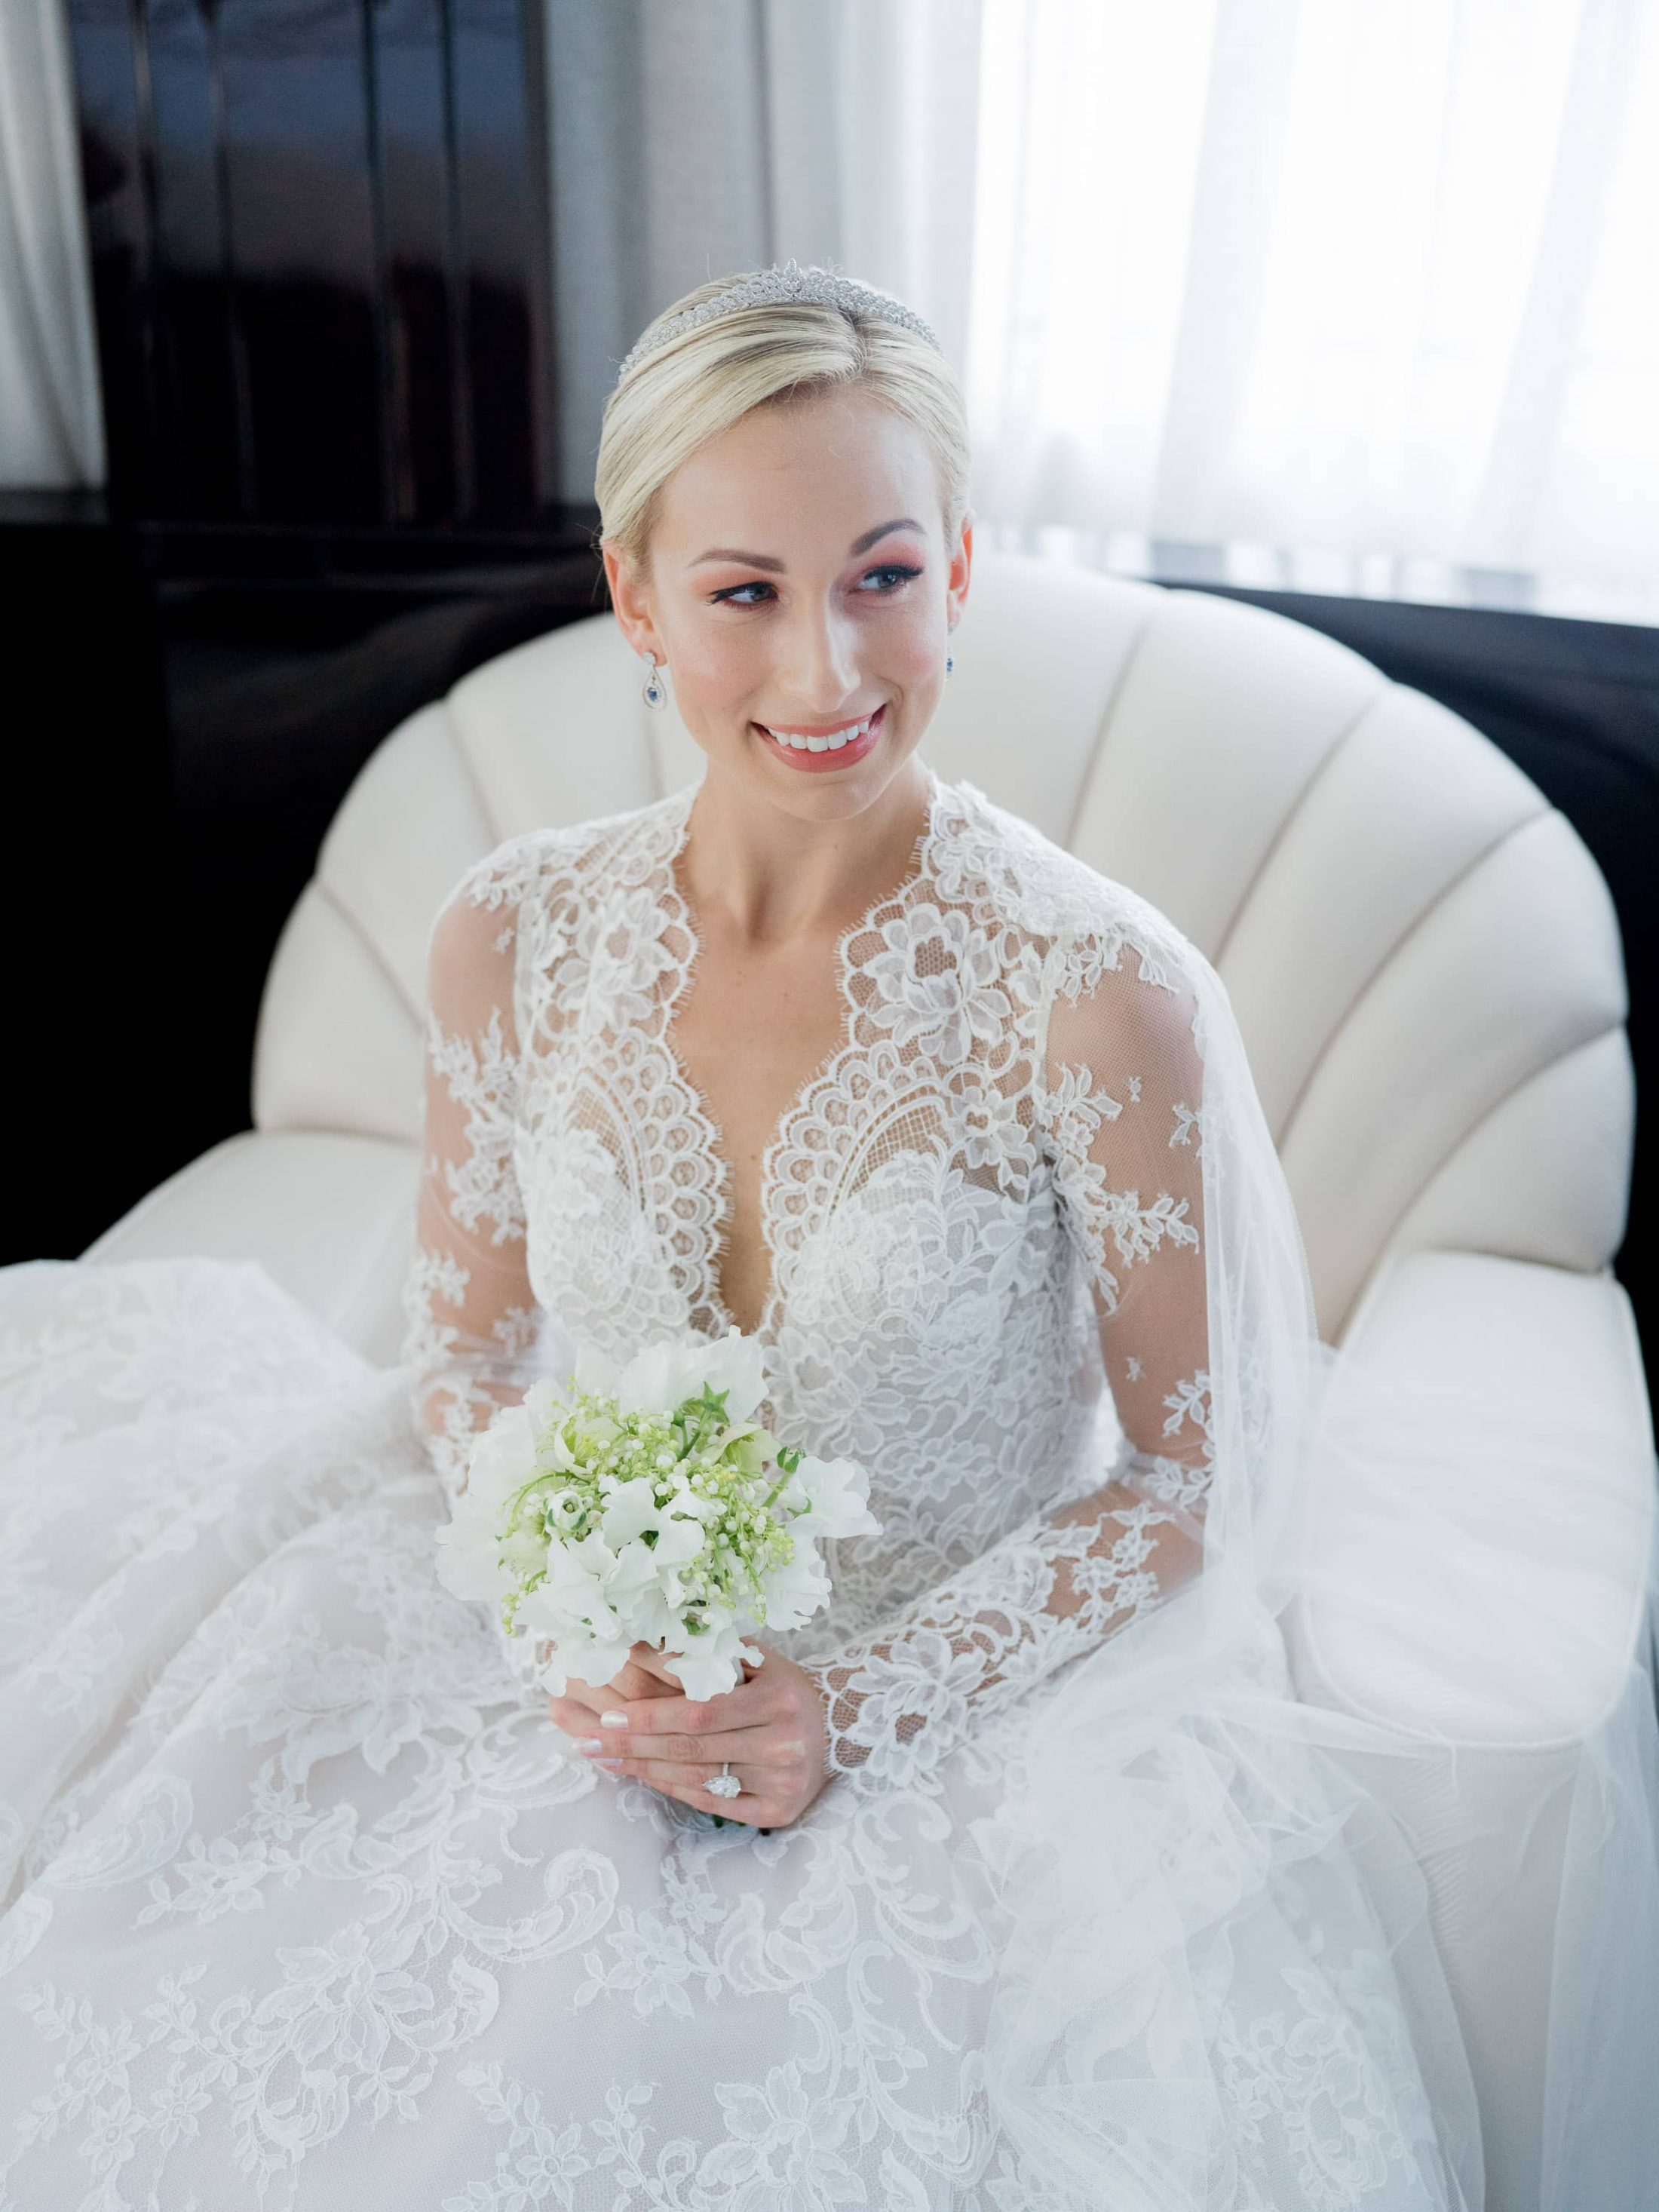 Bride in dress and with bouquet at this Miami yacht wedding | Photo by Corbin Gurkin